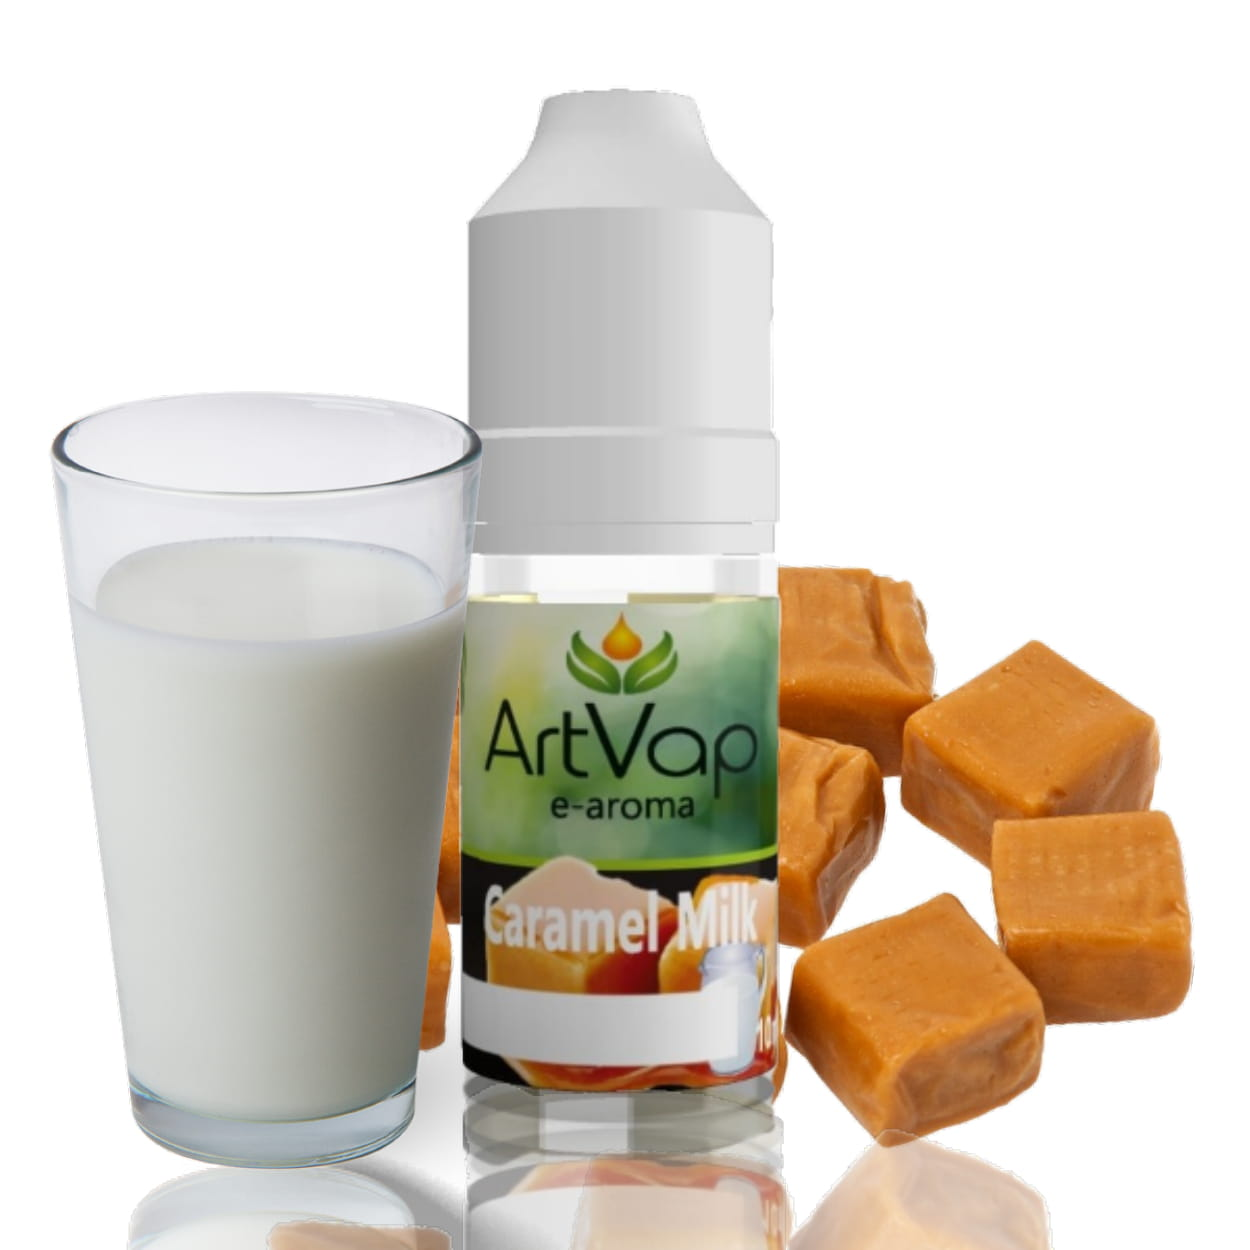 10 ml ArtVap - Caramel Milk